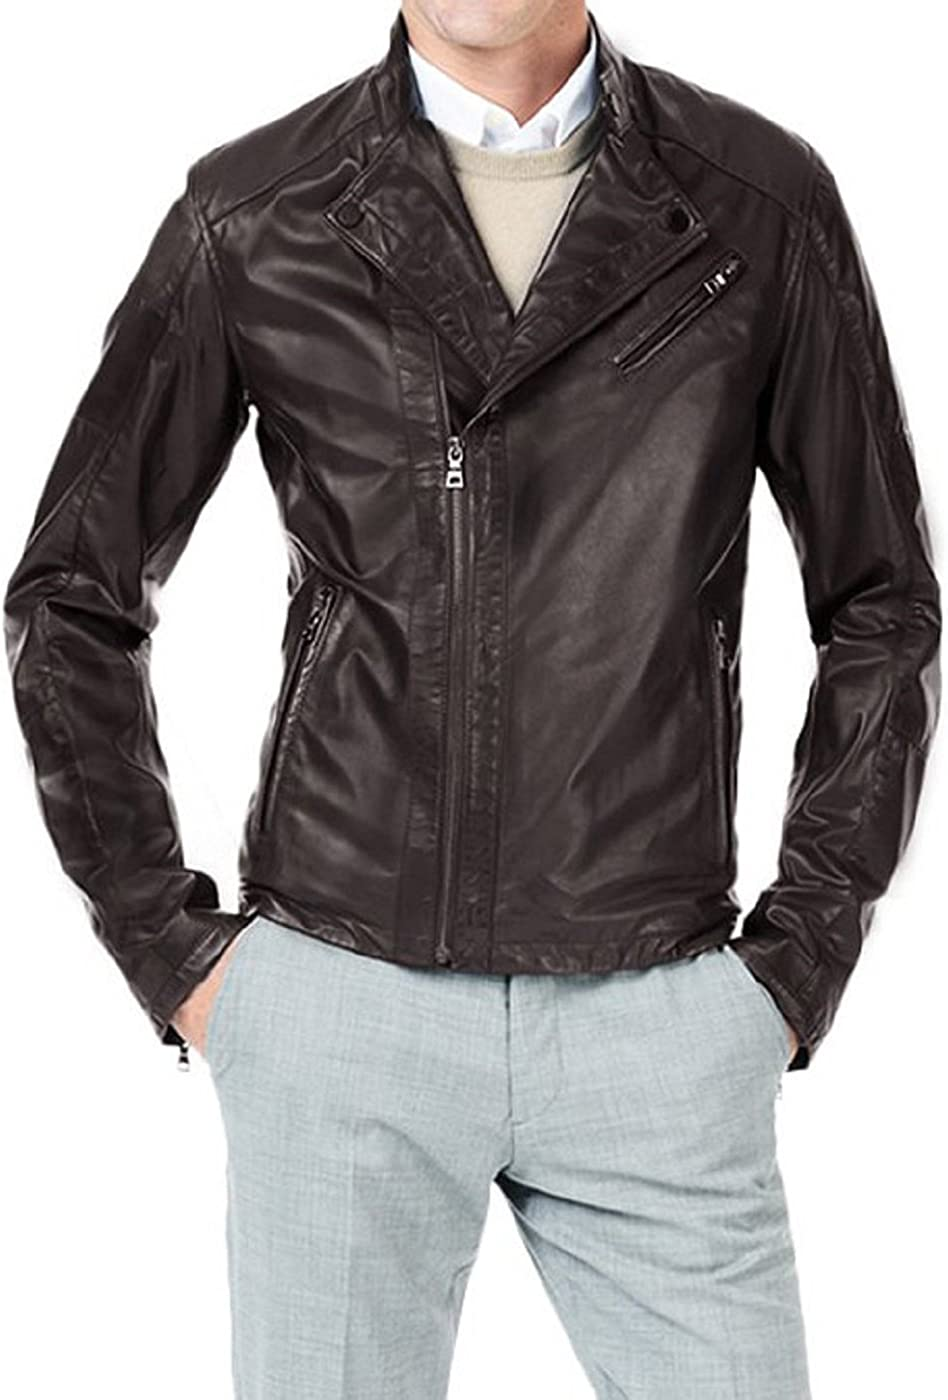 Mens Genuine Lambskin Leather Jacket Slim fit Motorcycle Jacket P198